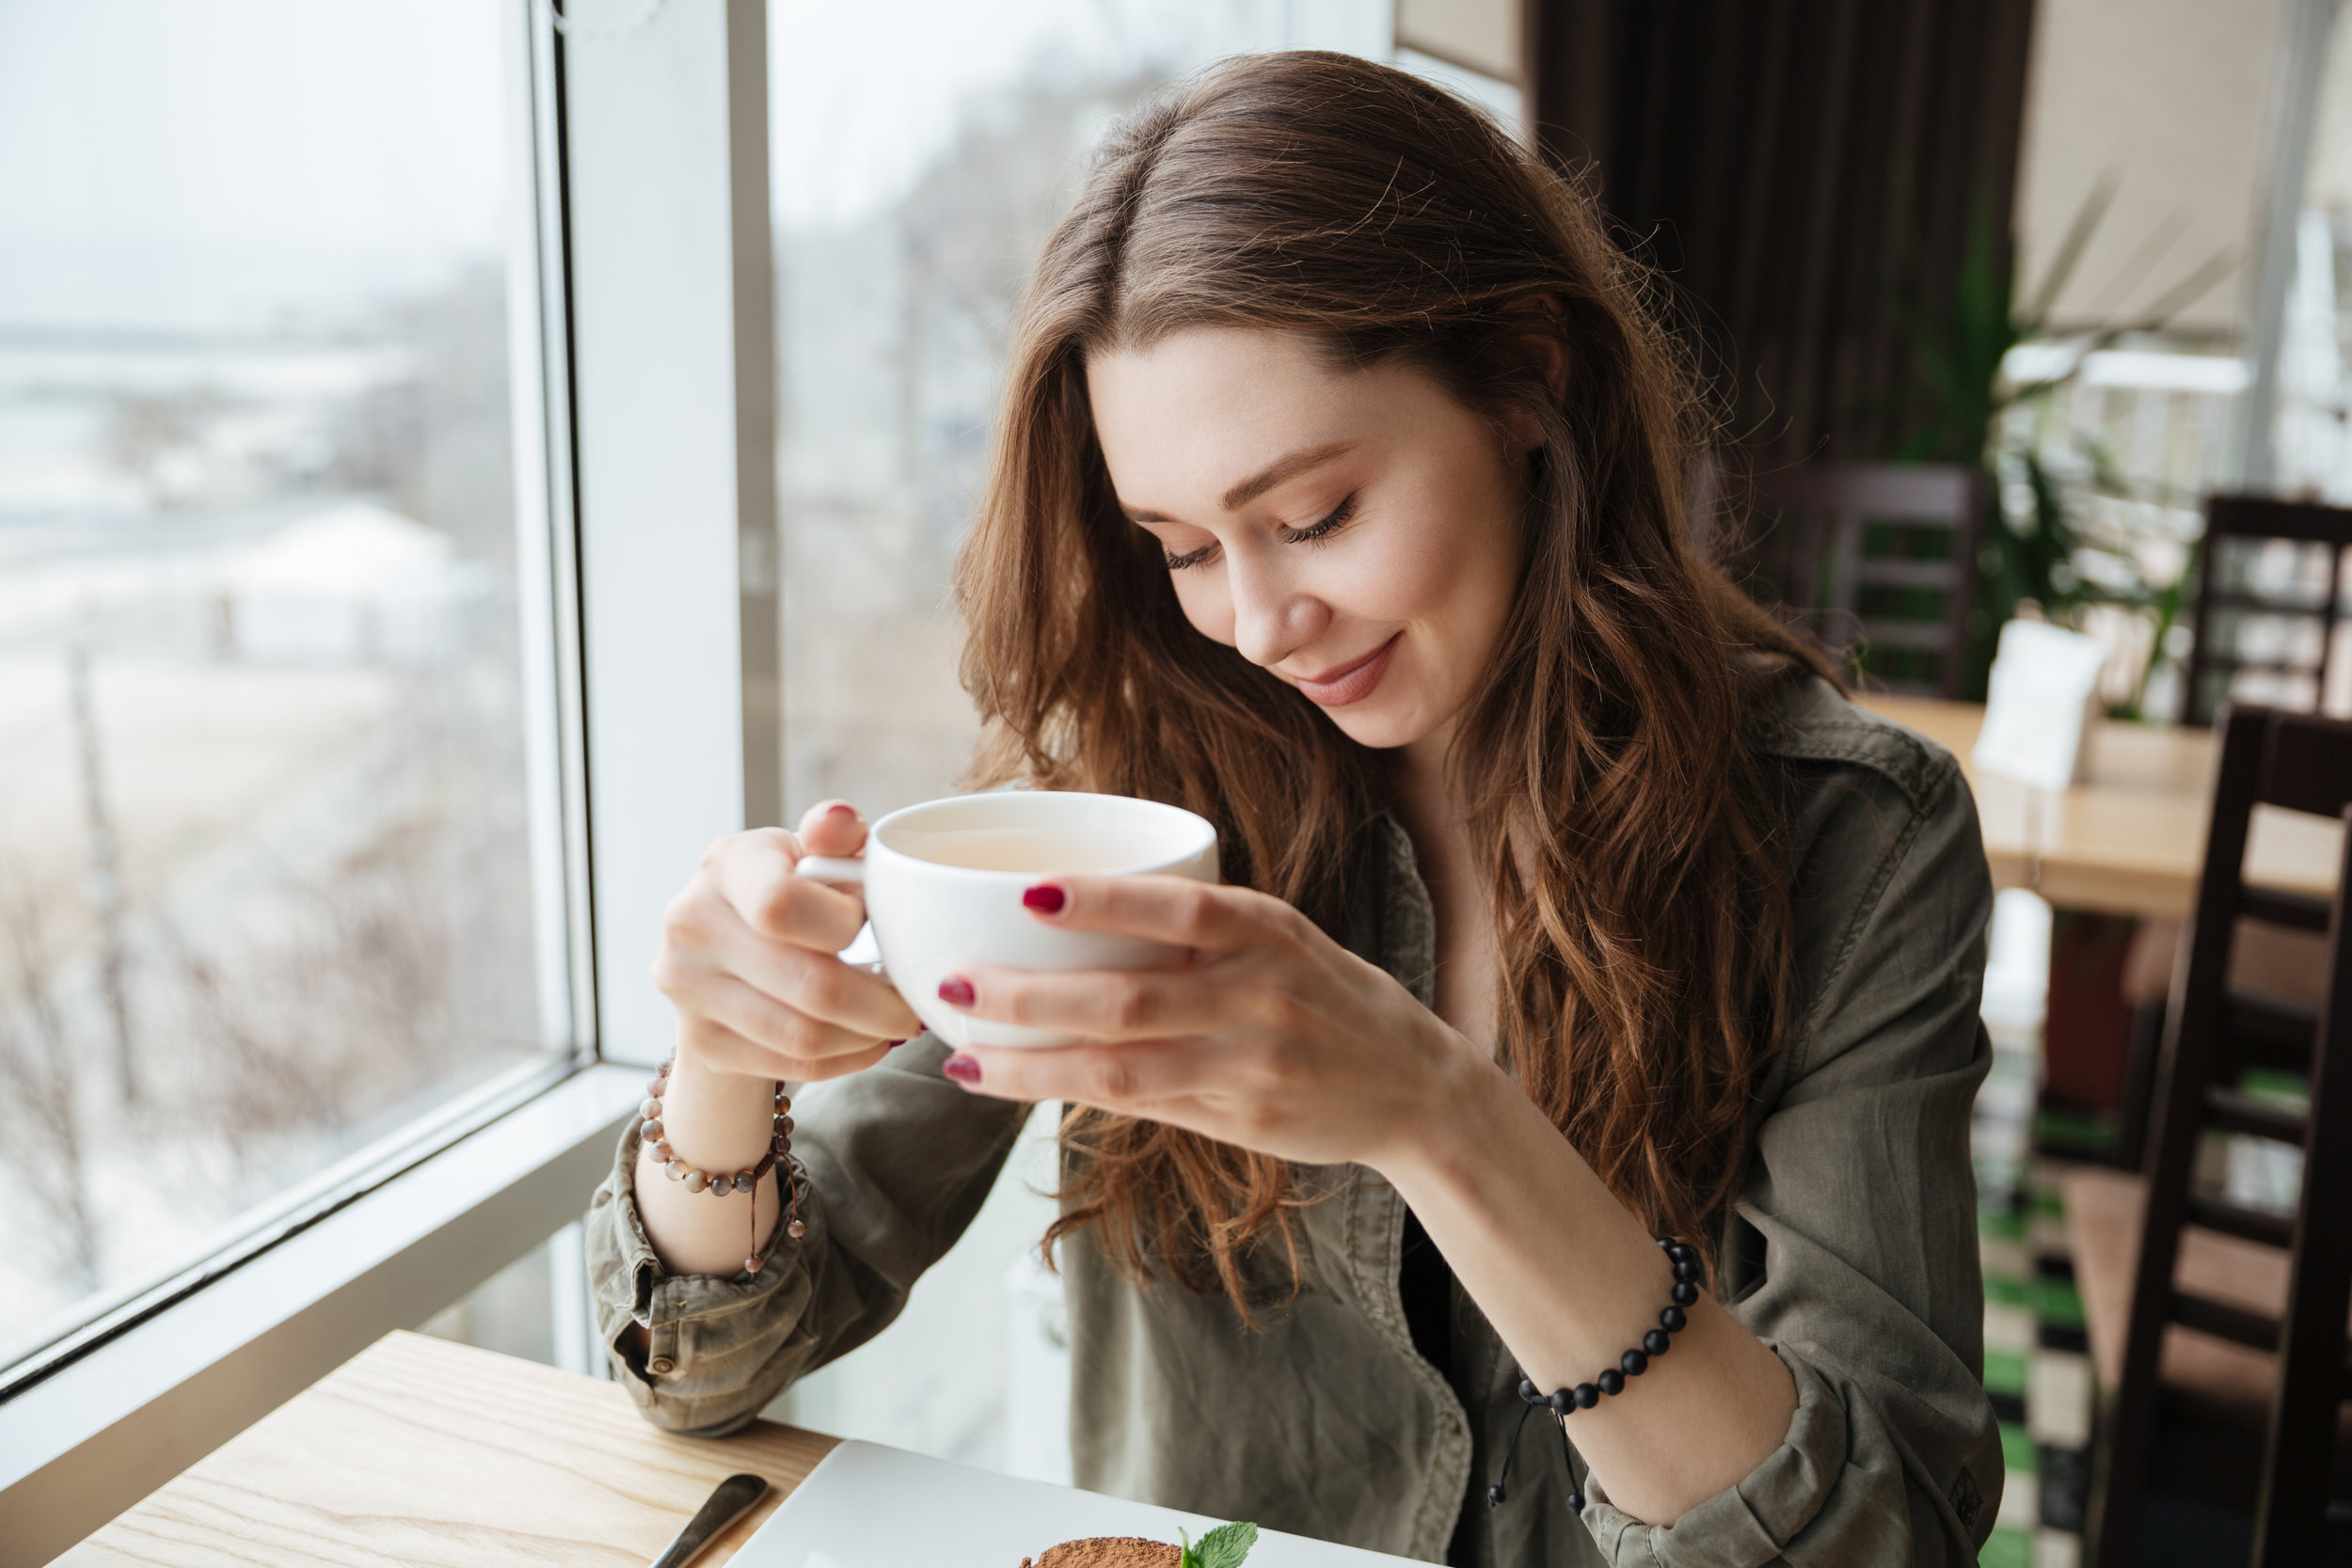 woman at cafe drinking tea